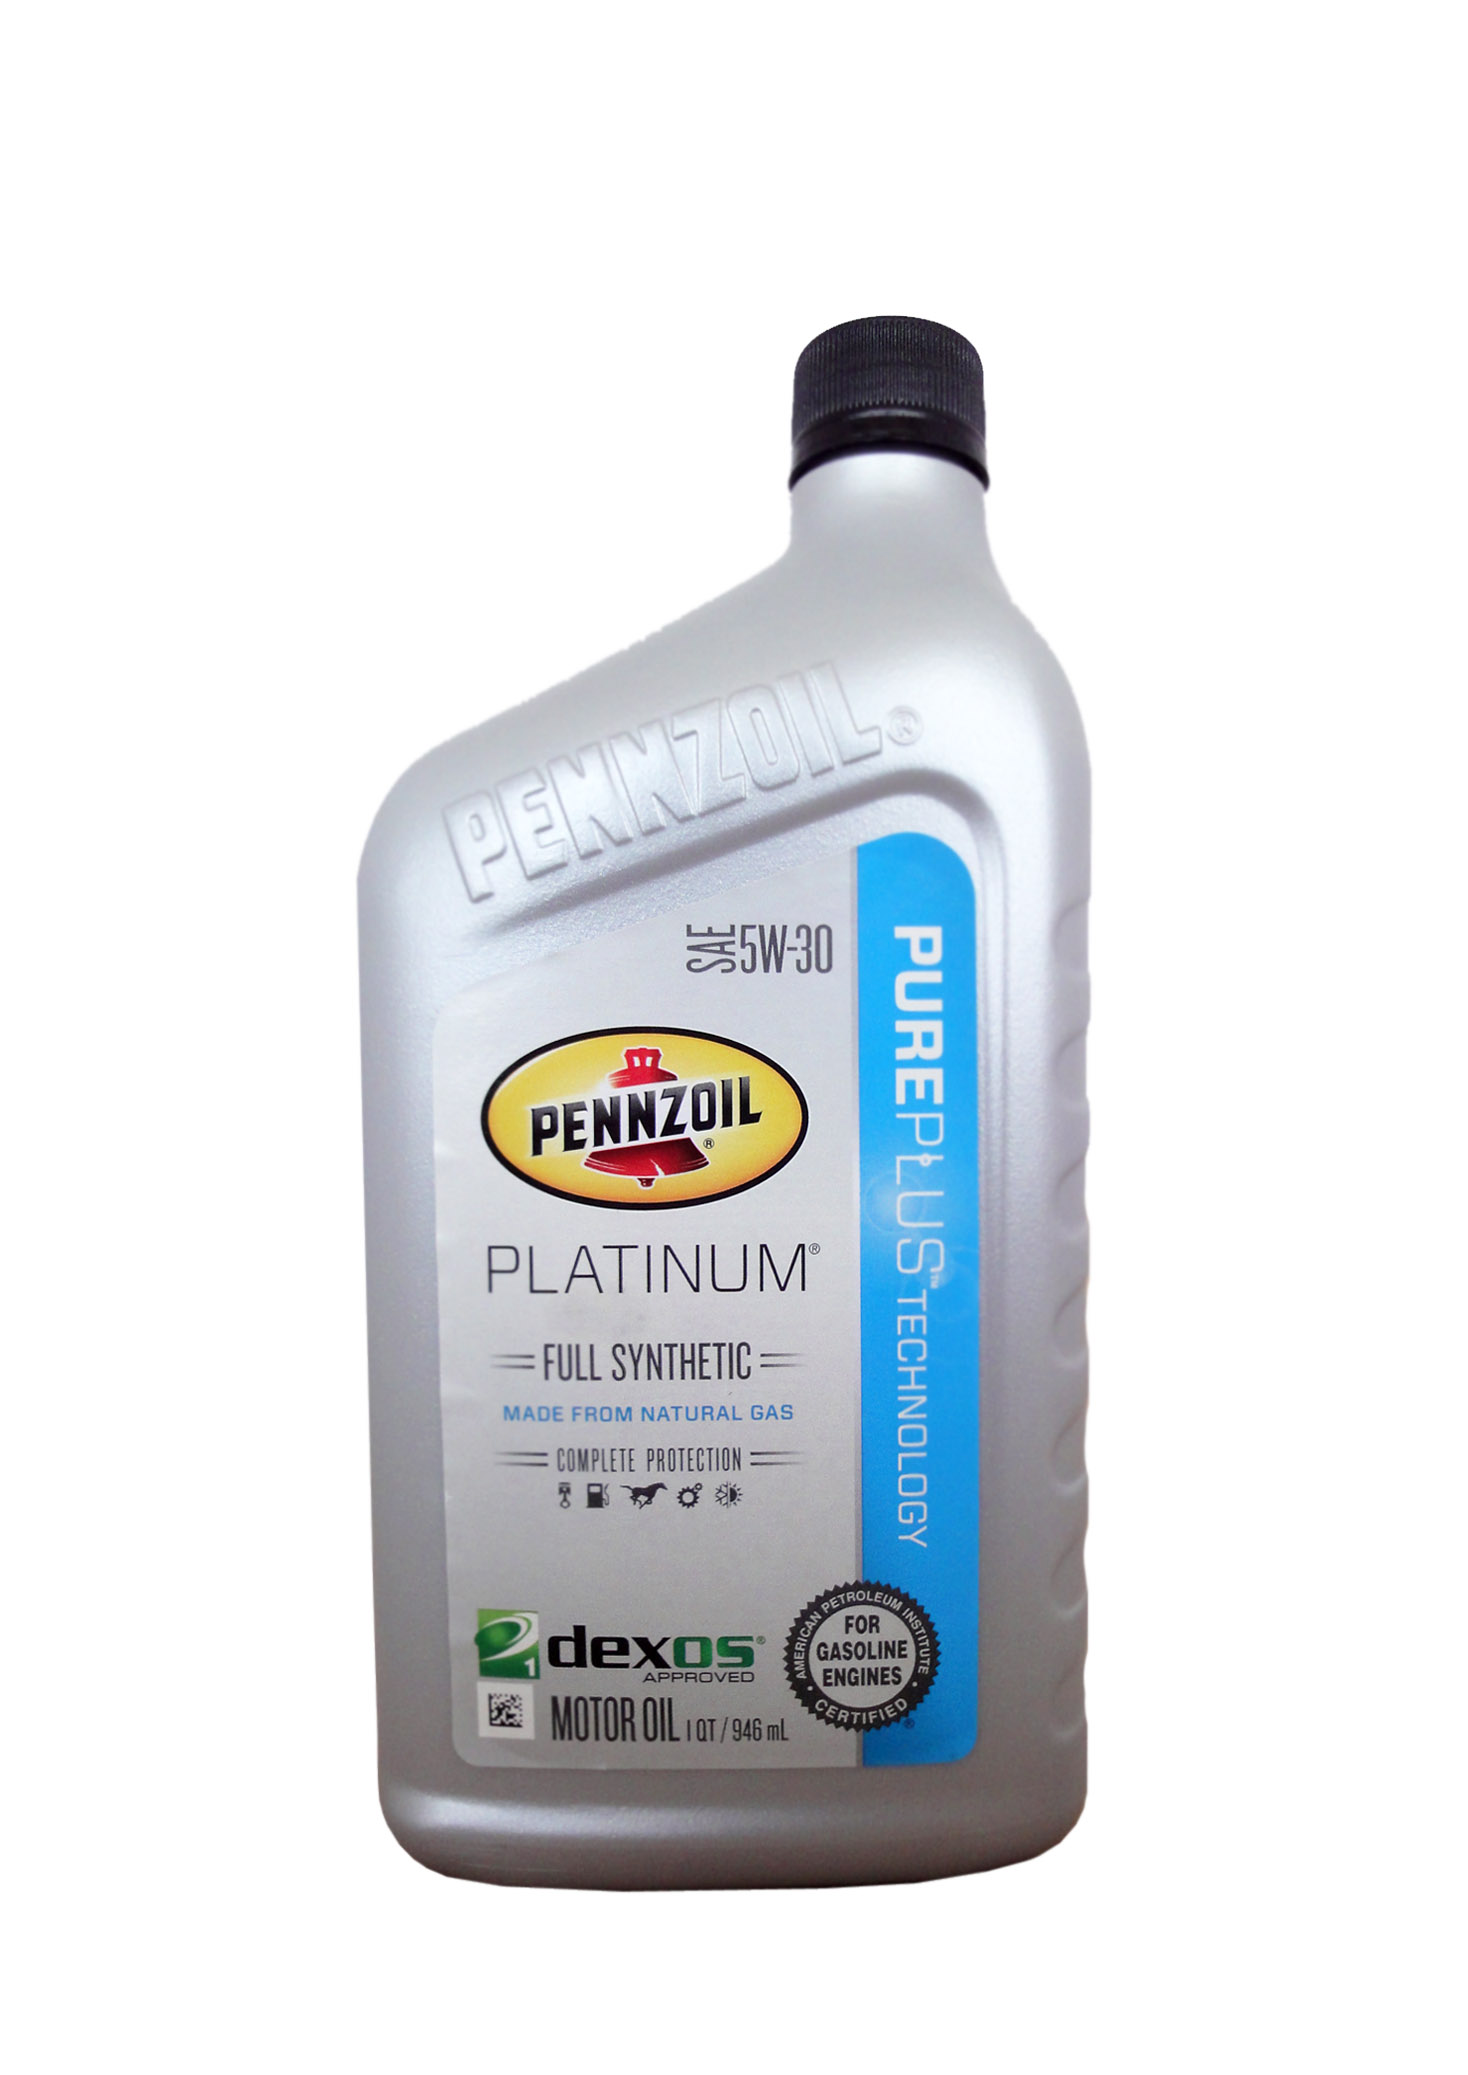 for Pure synthetic motor oil